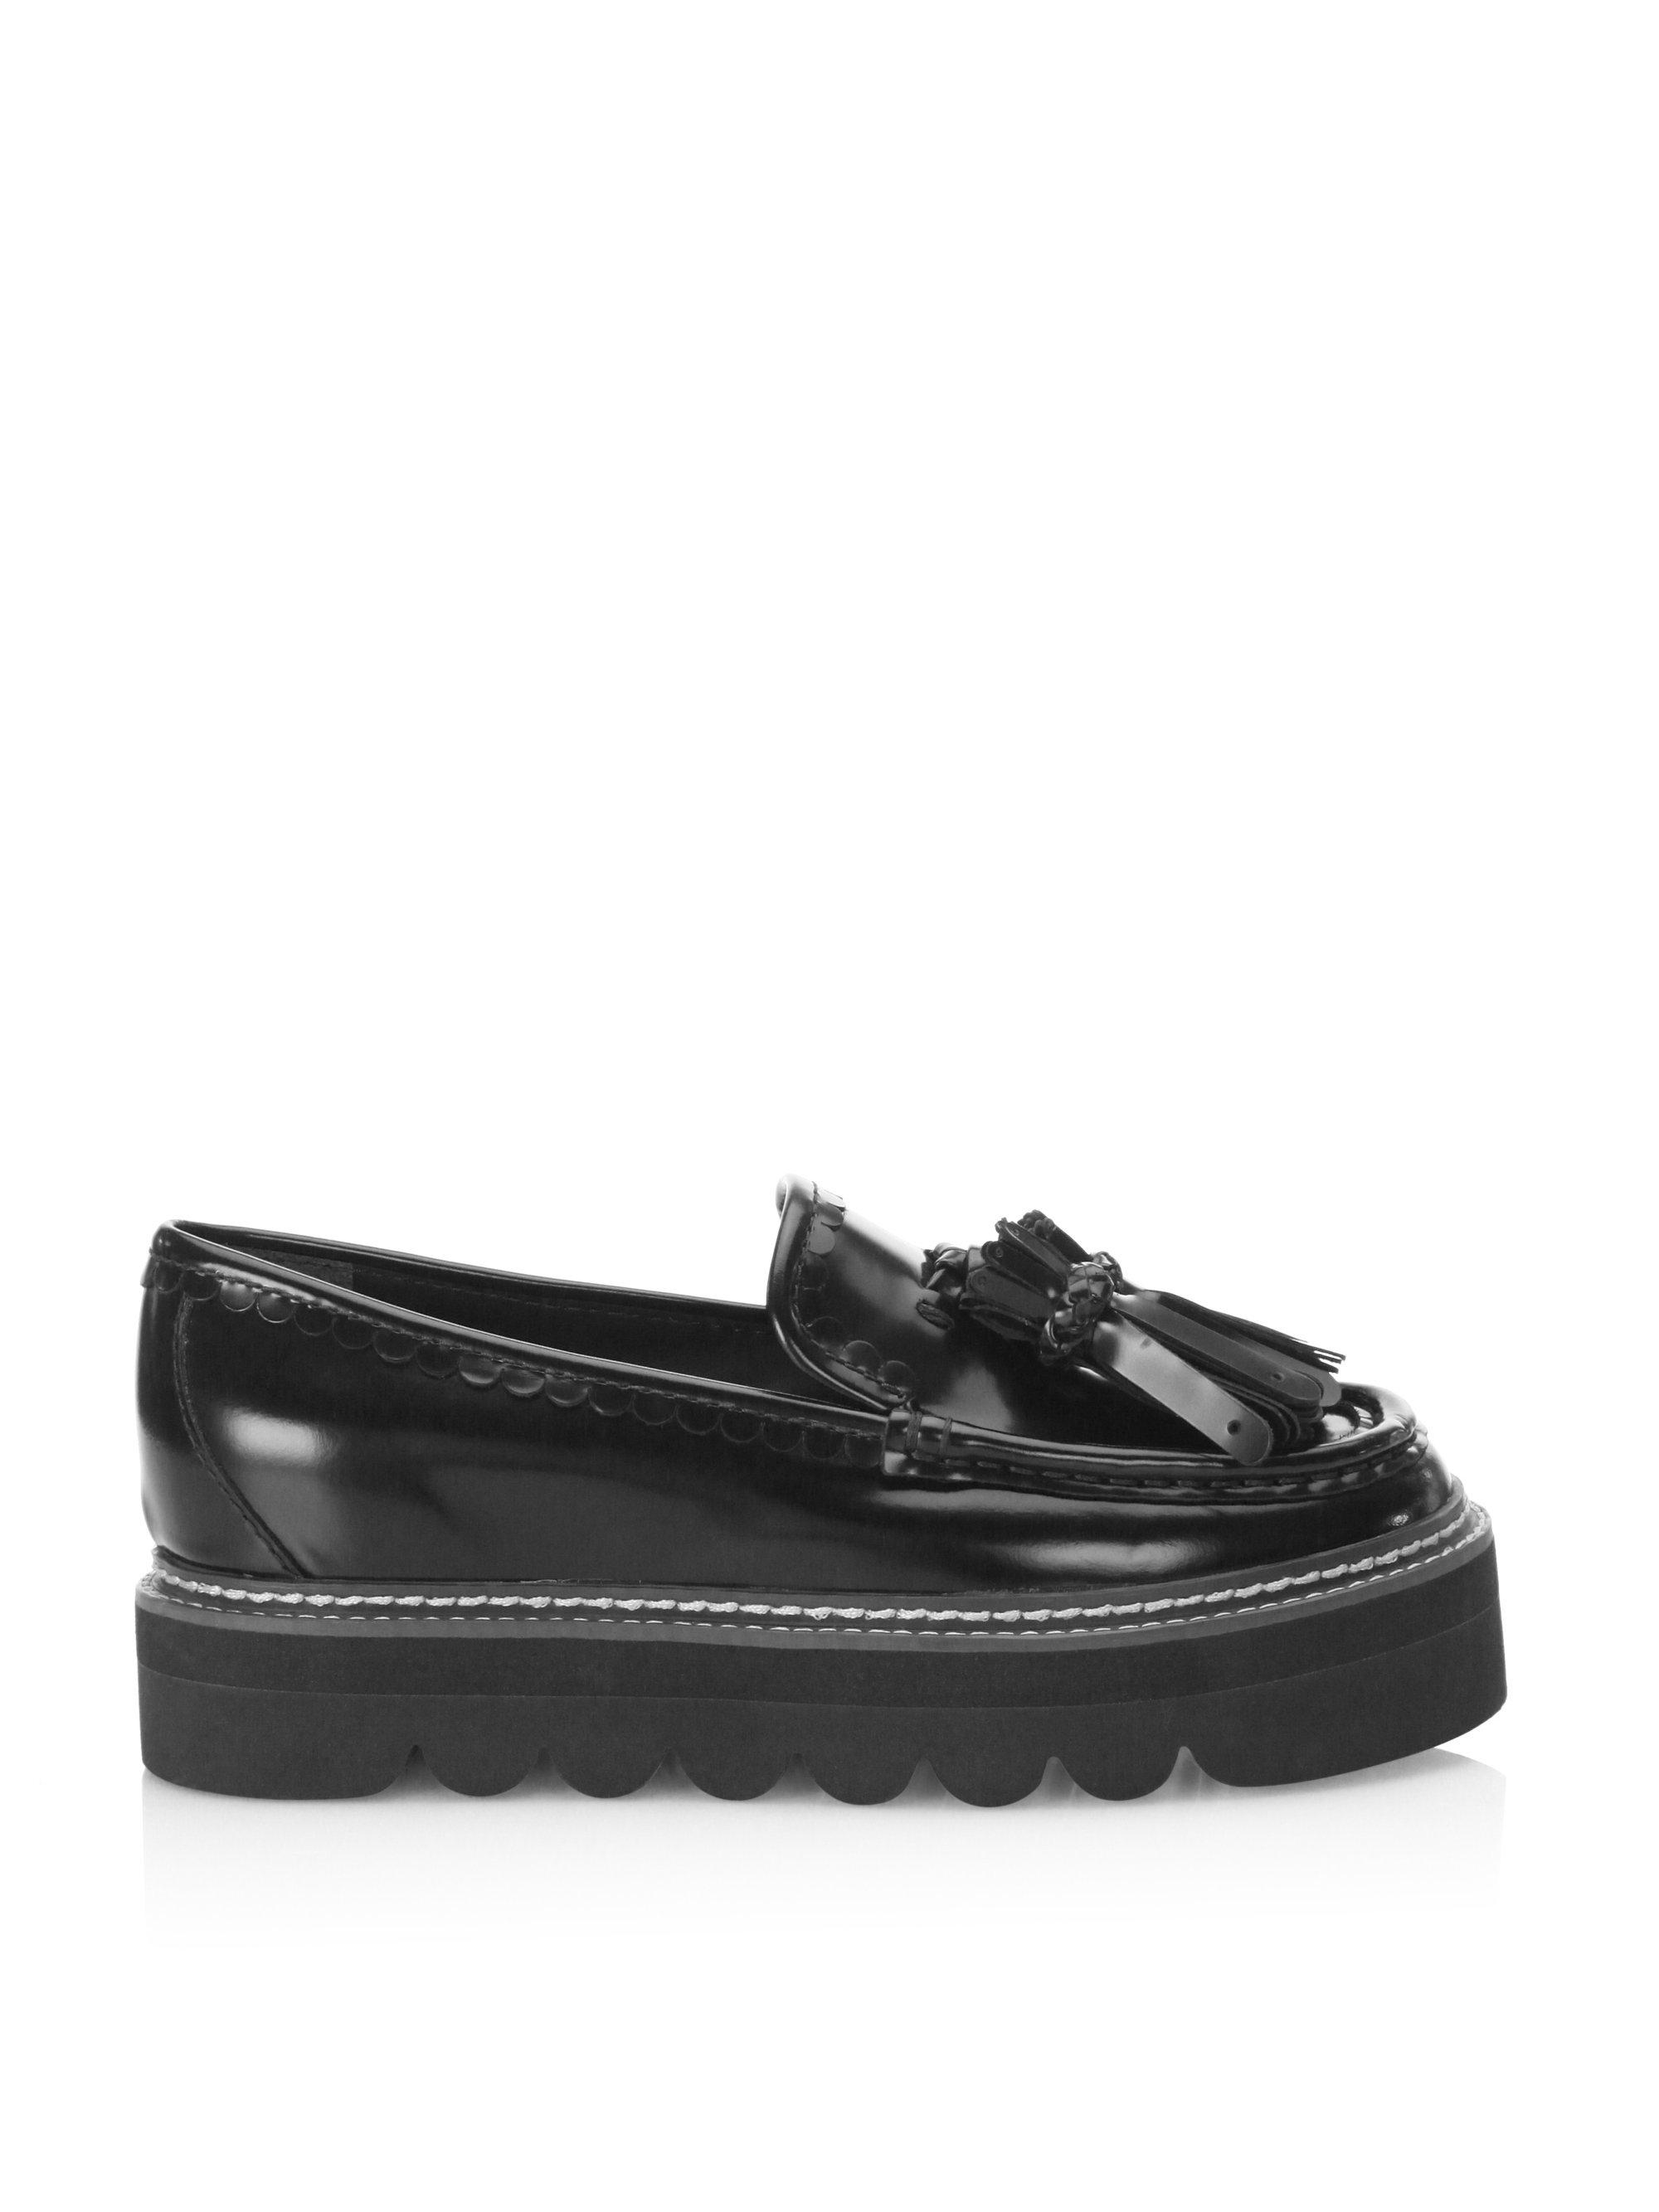 c206ed8147b36 Lyst - See By Chloé Zina Leather Platform Loafers in Black